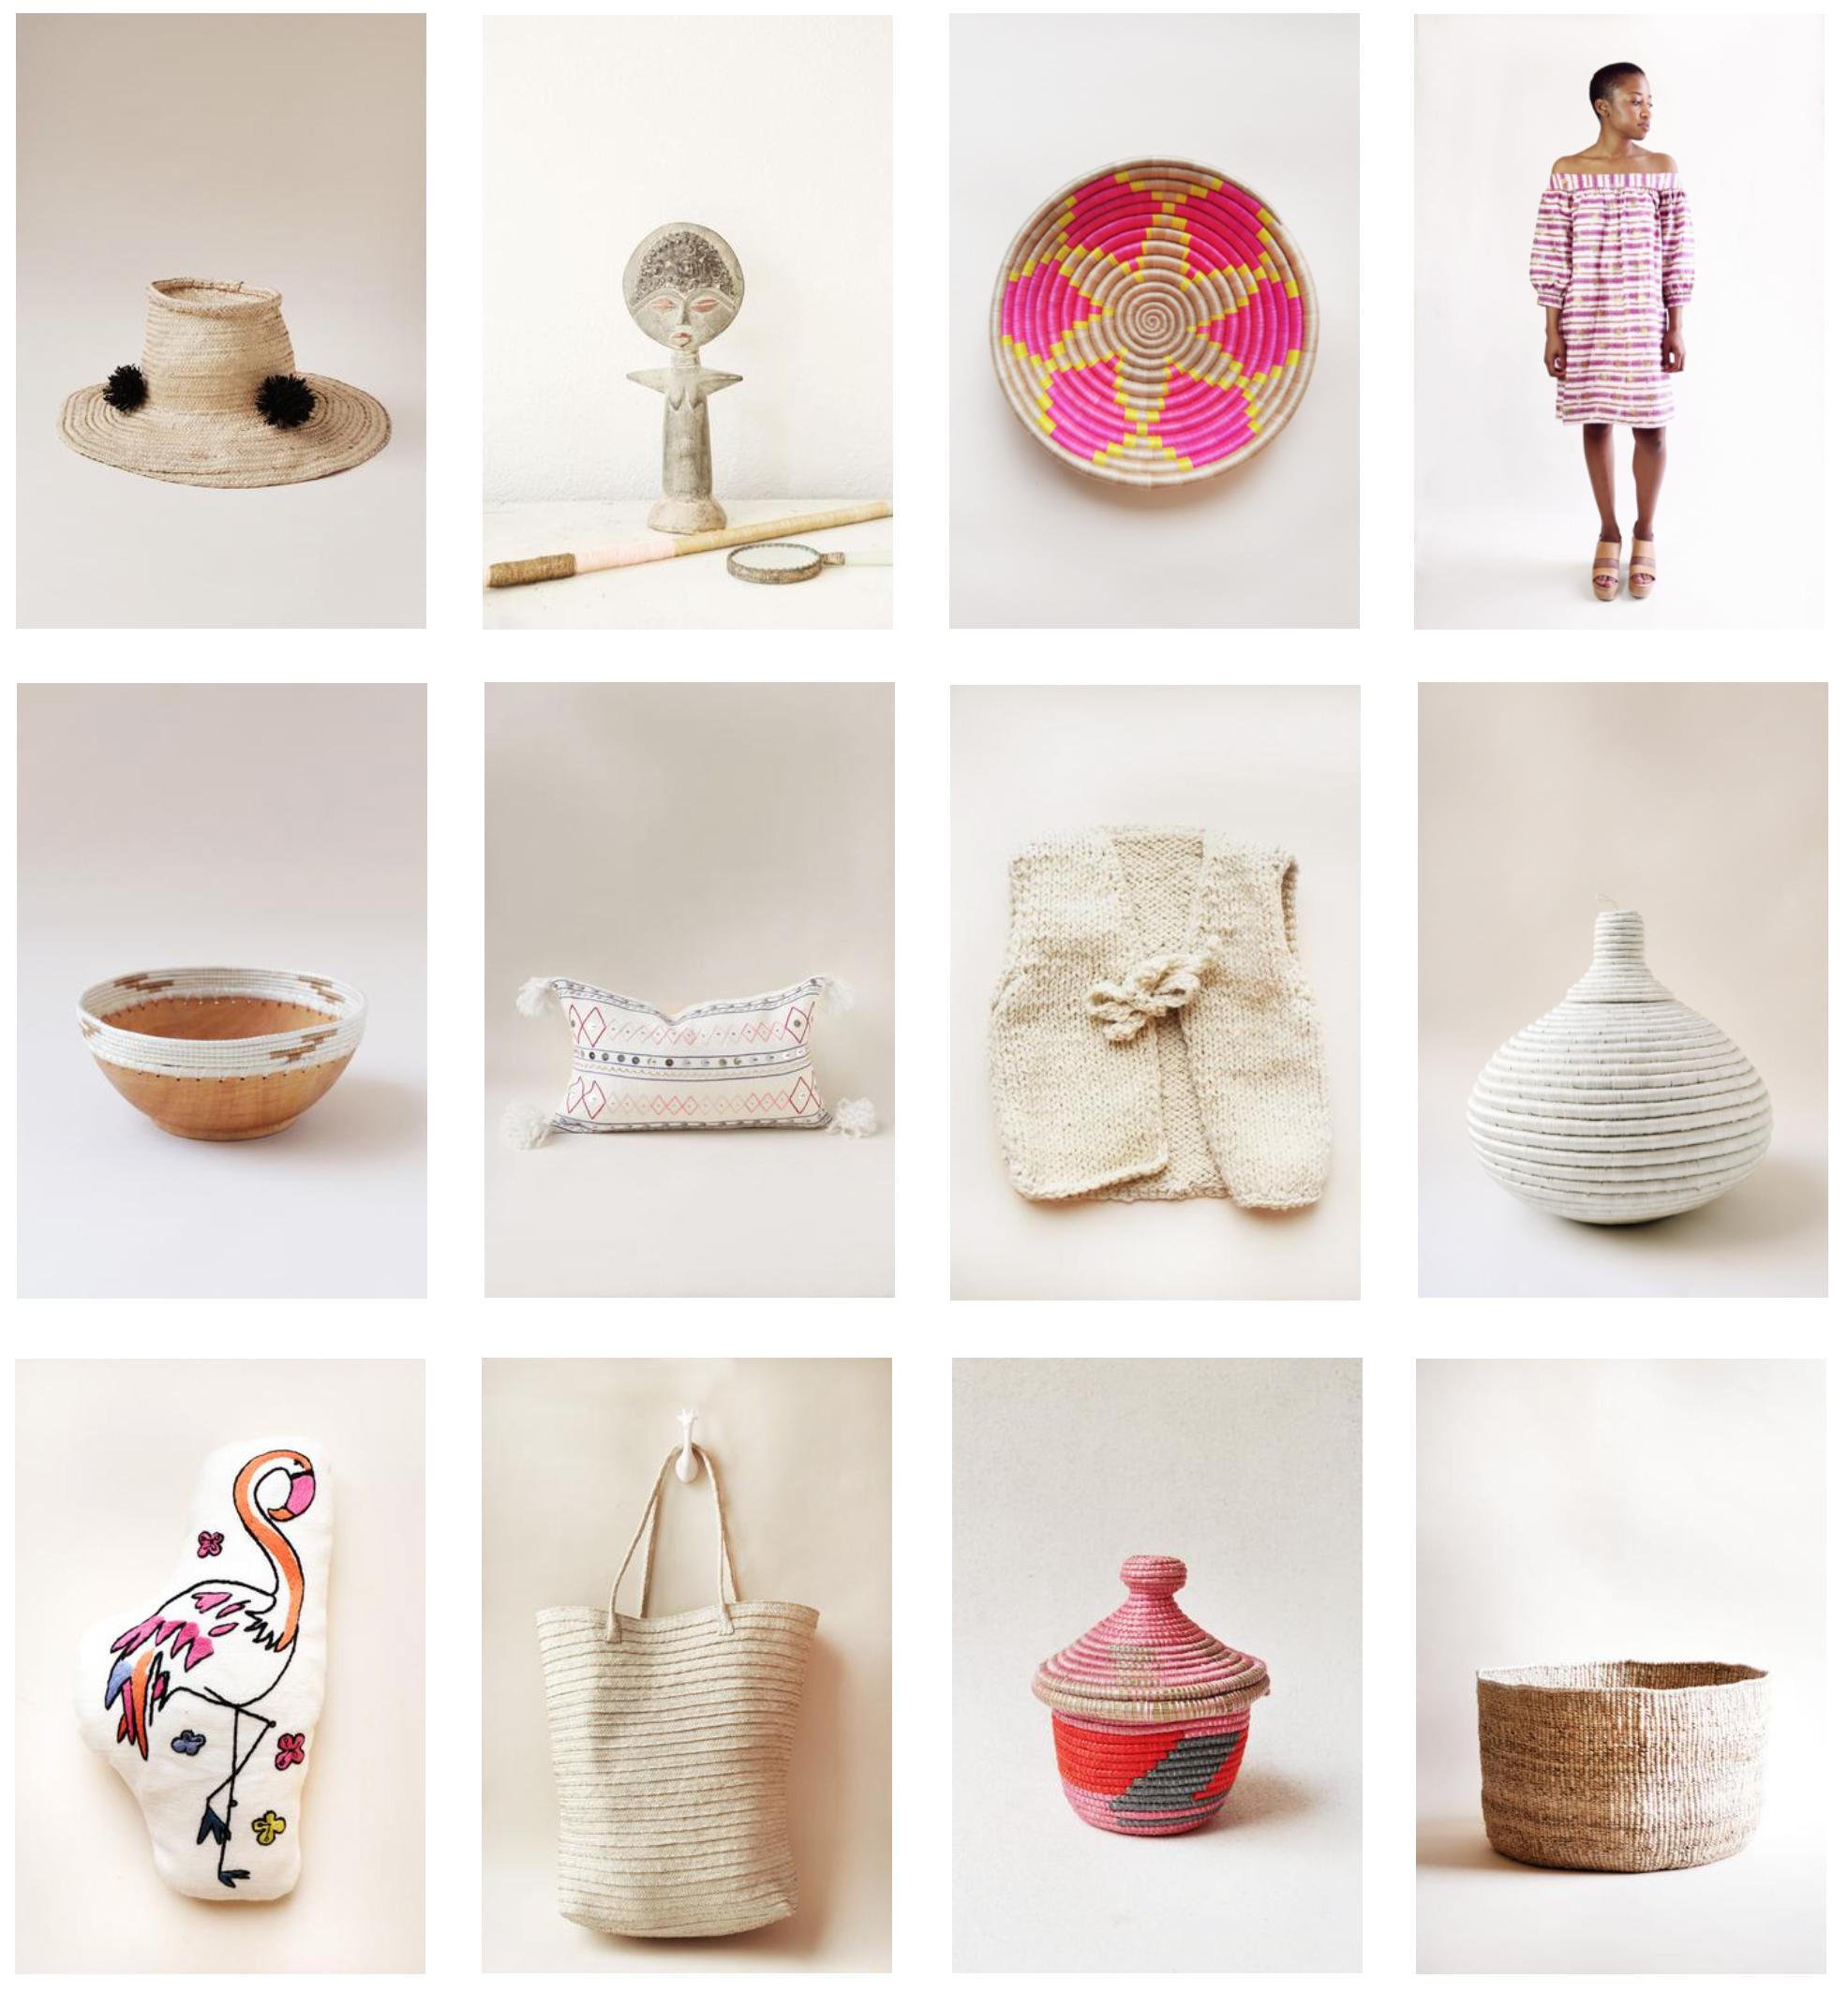 handmade products from indego africa